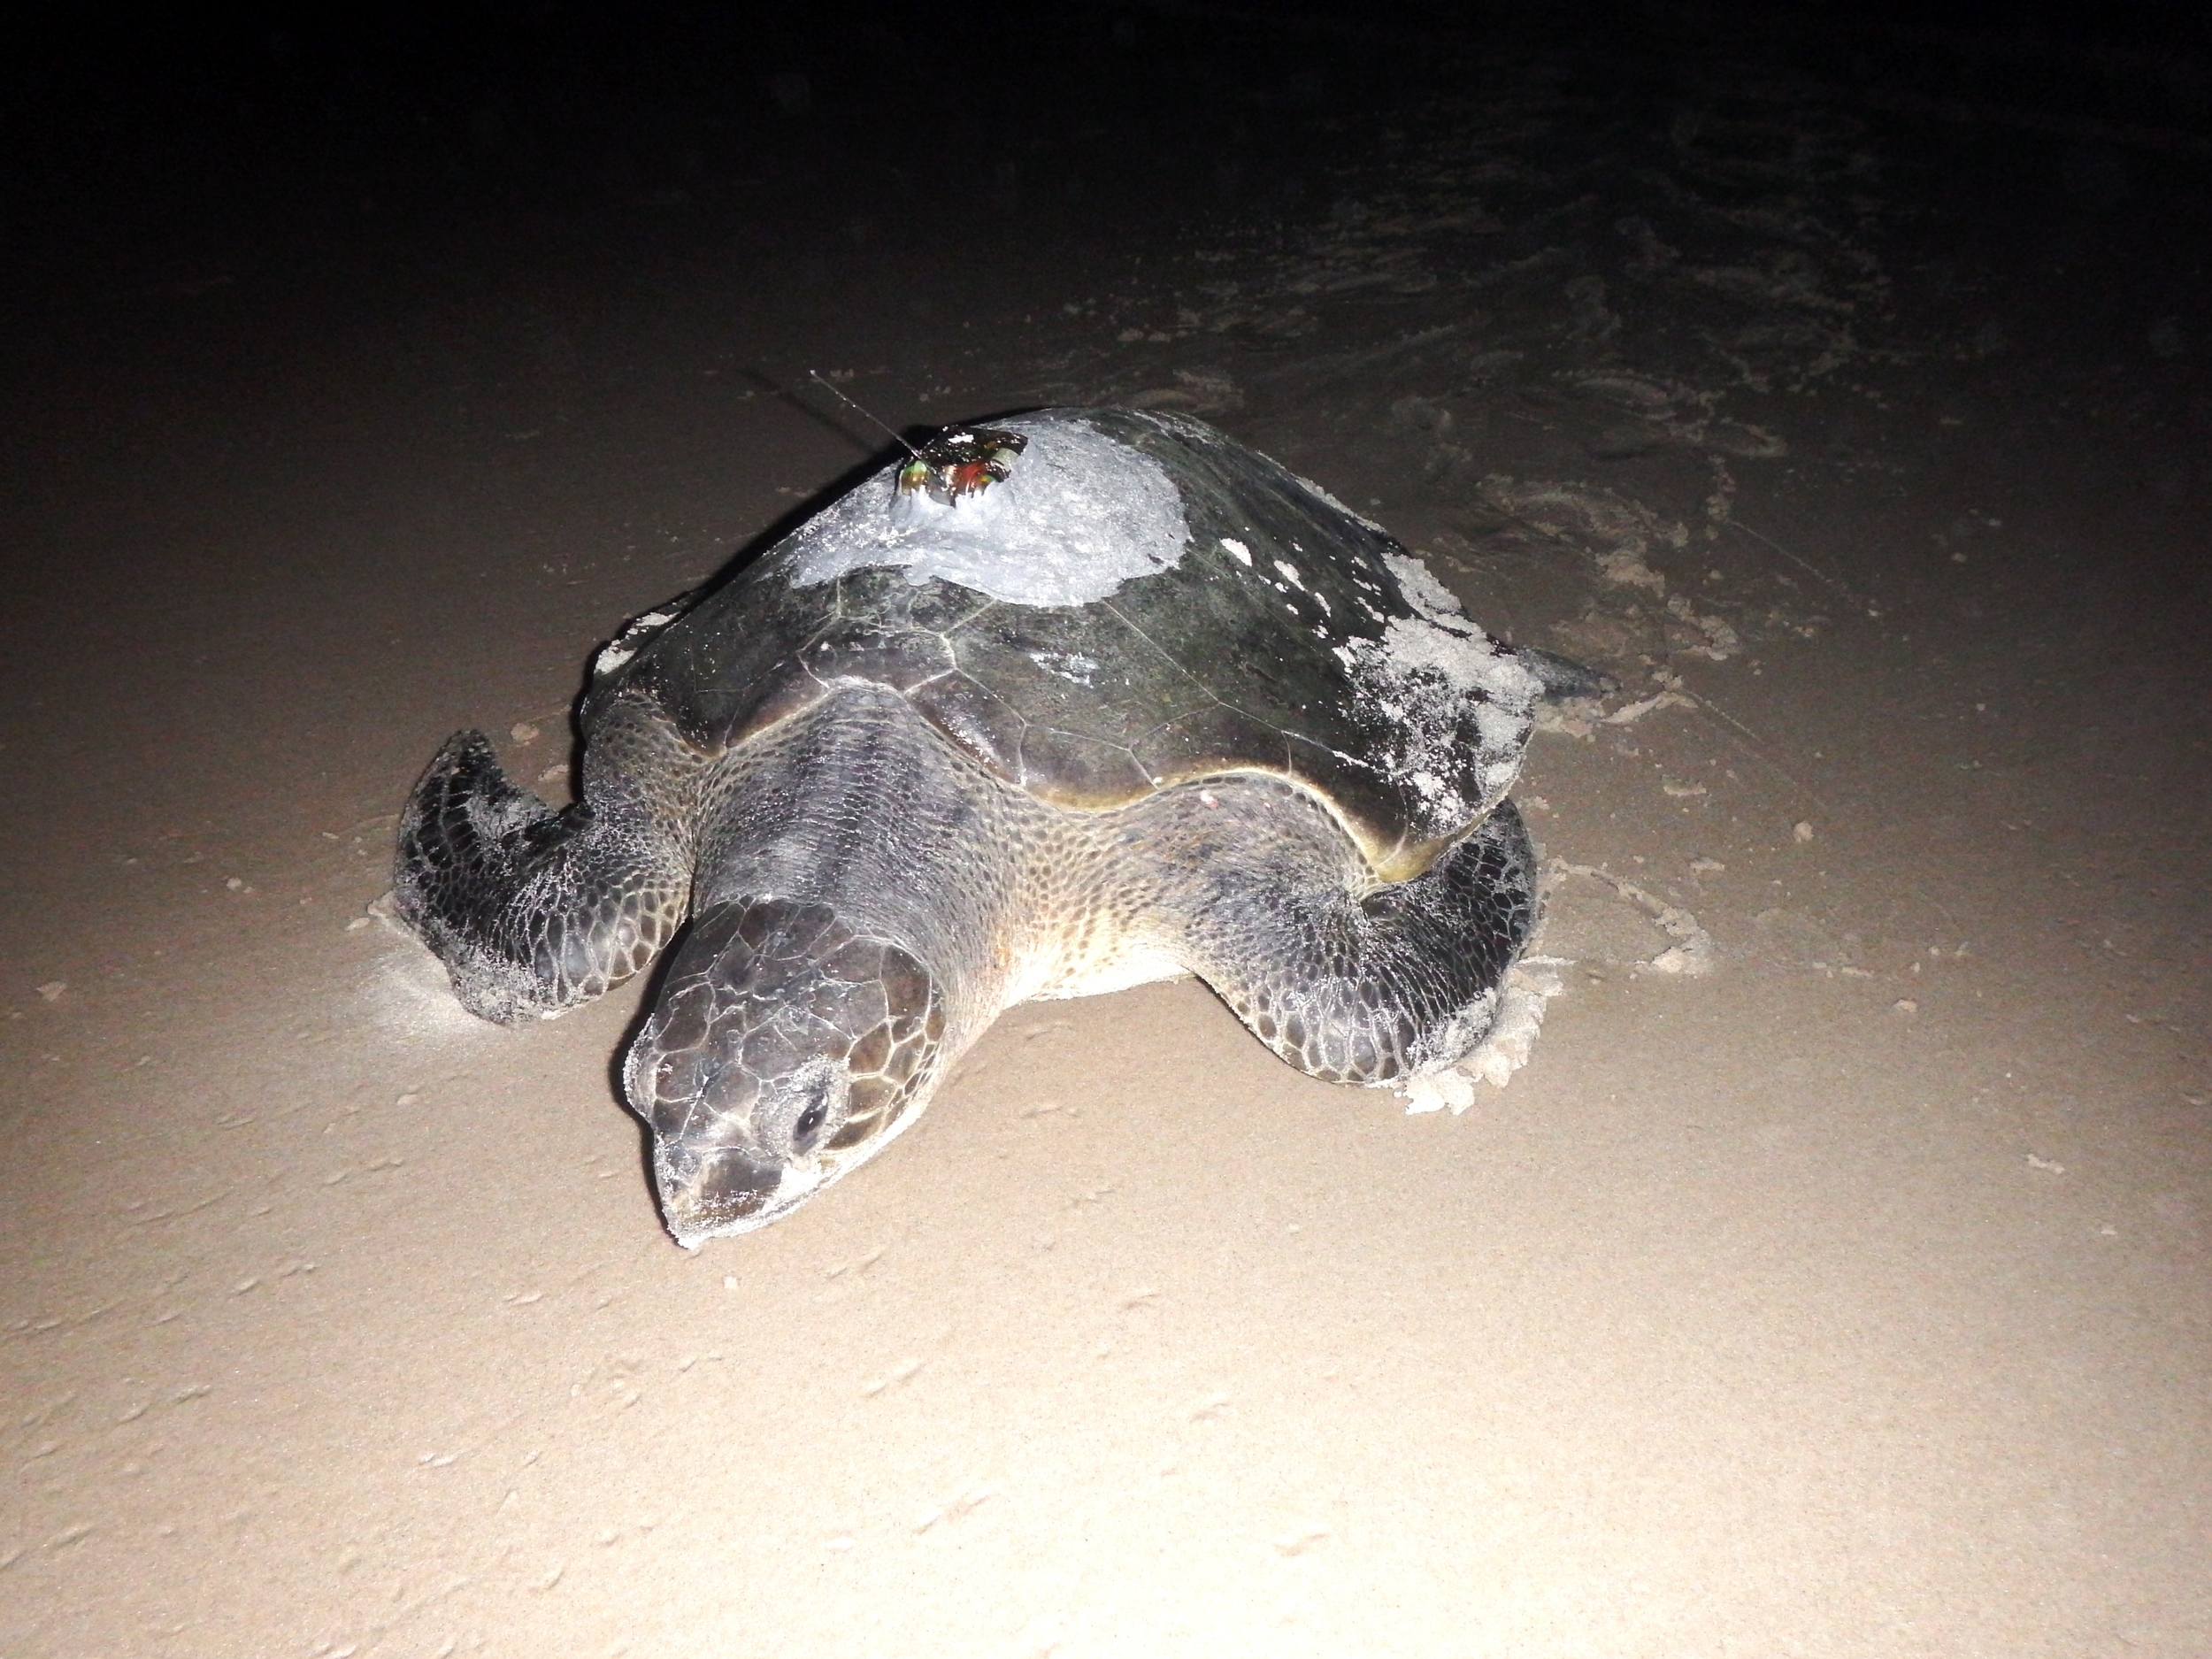 An olive ridley sea turtle ( Lepidochelys olivacea ) with satellite tag attached, that has recently been  tracked  from a nesting beach in Gabon. Photo: Kristian Metcalfe